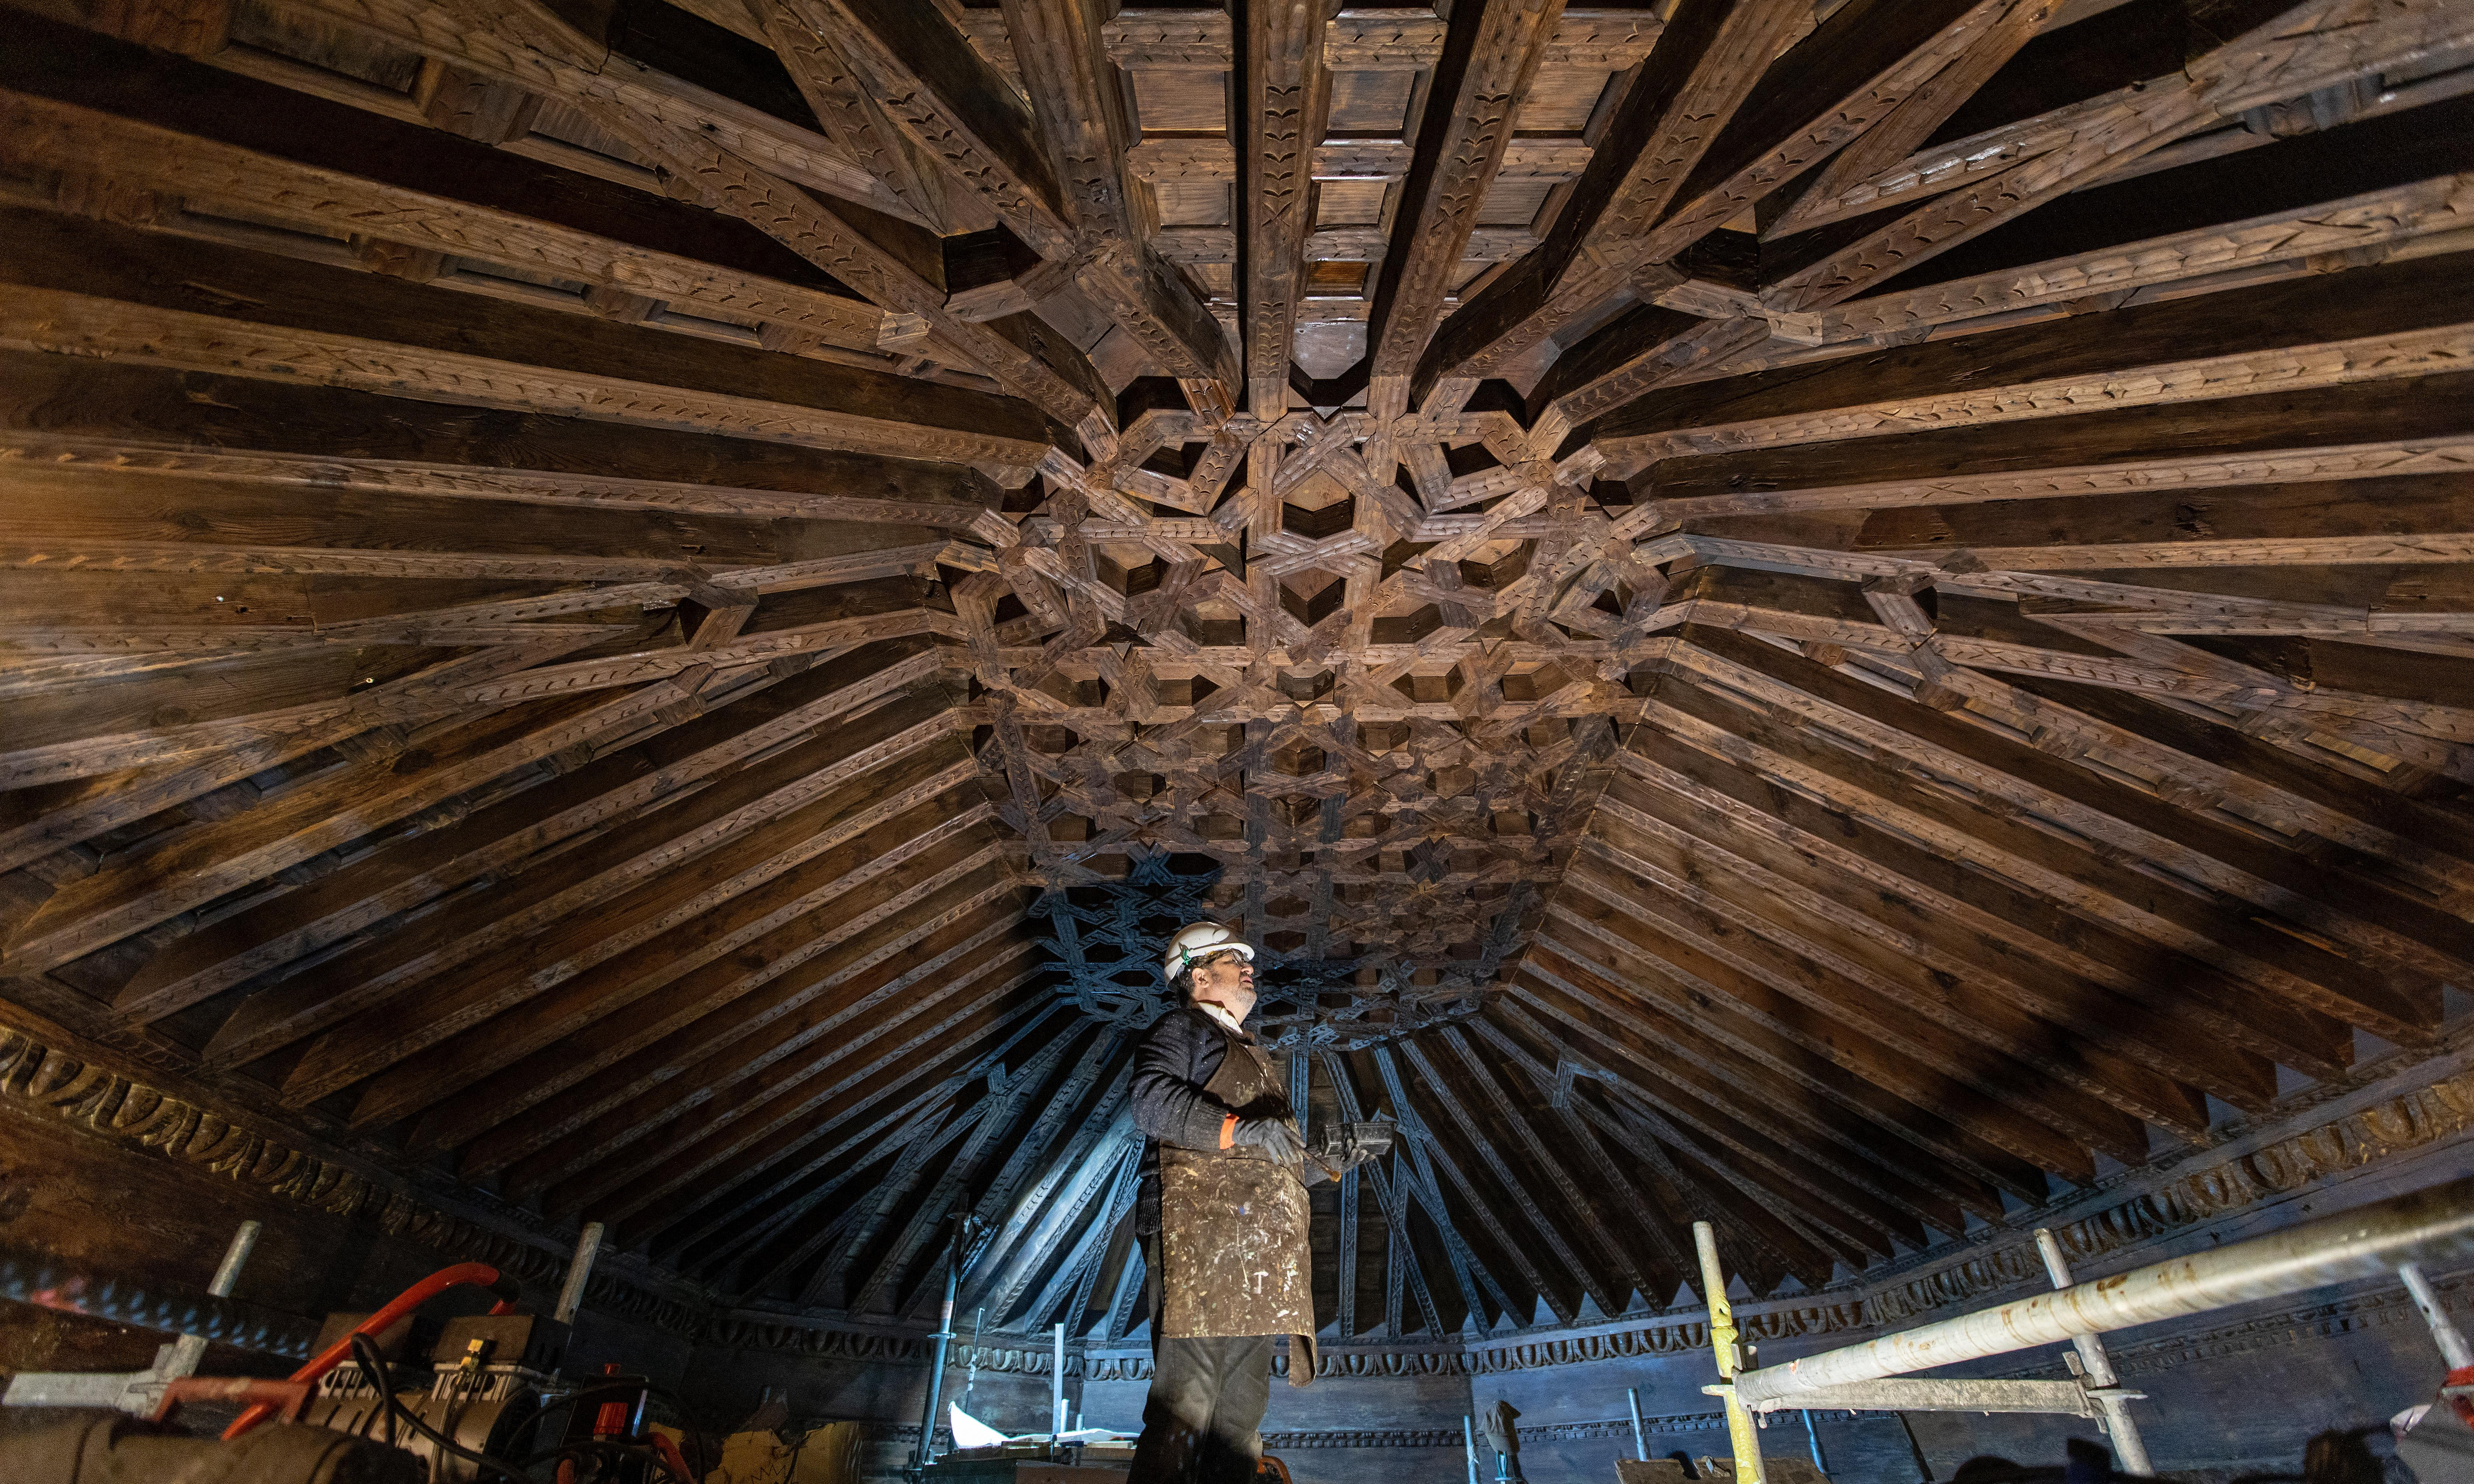 Madrid church ceiling restored to glory after centuries under plaster